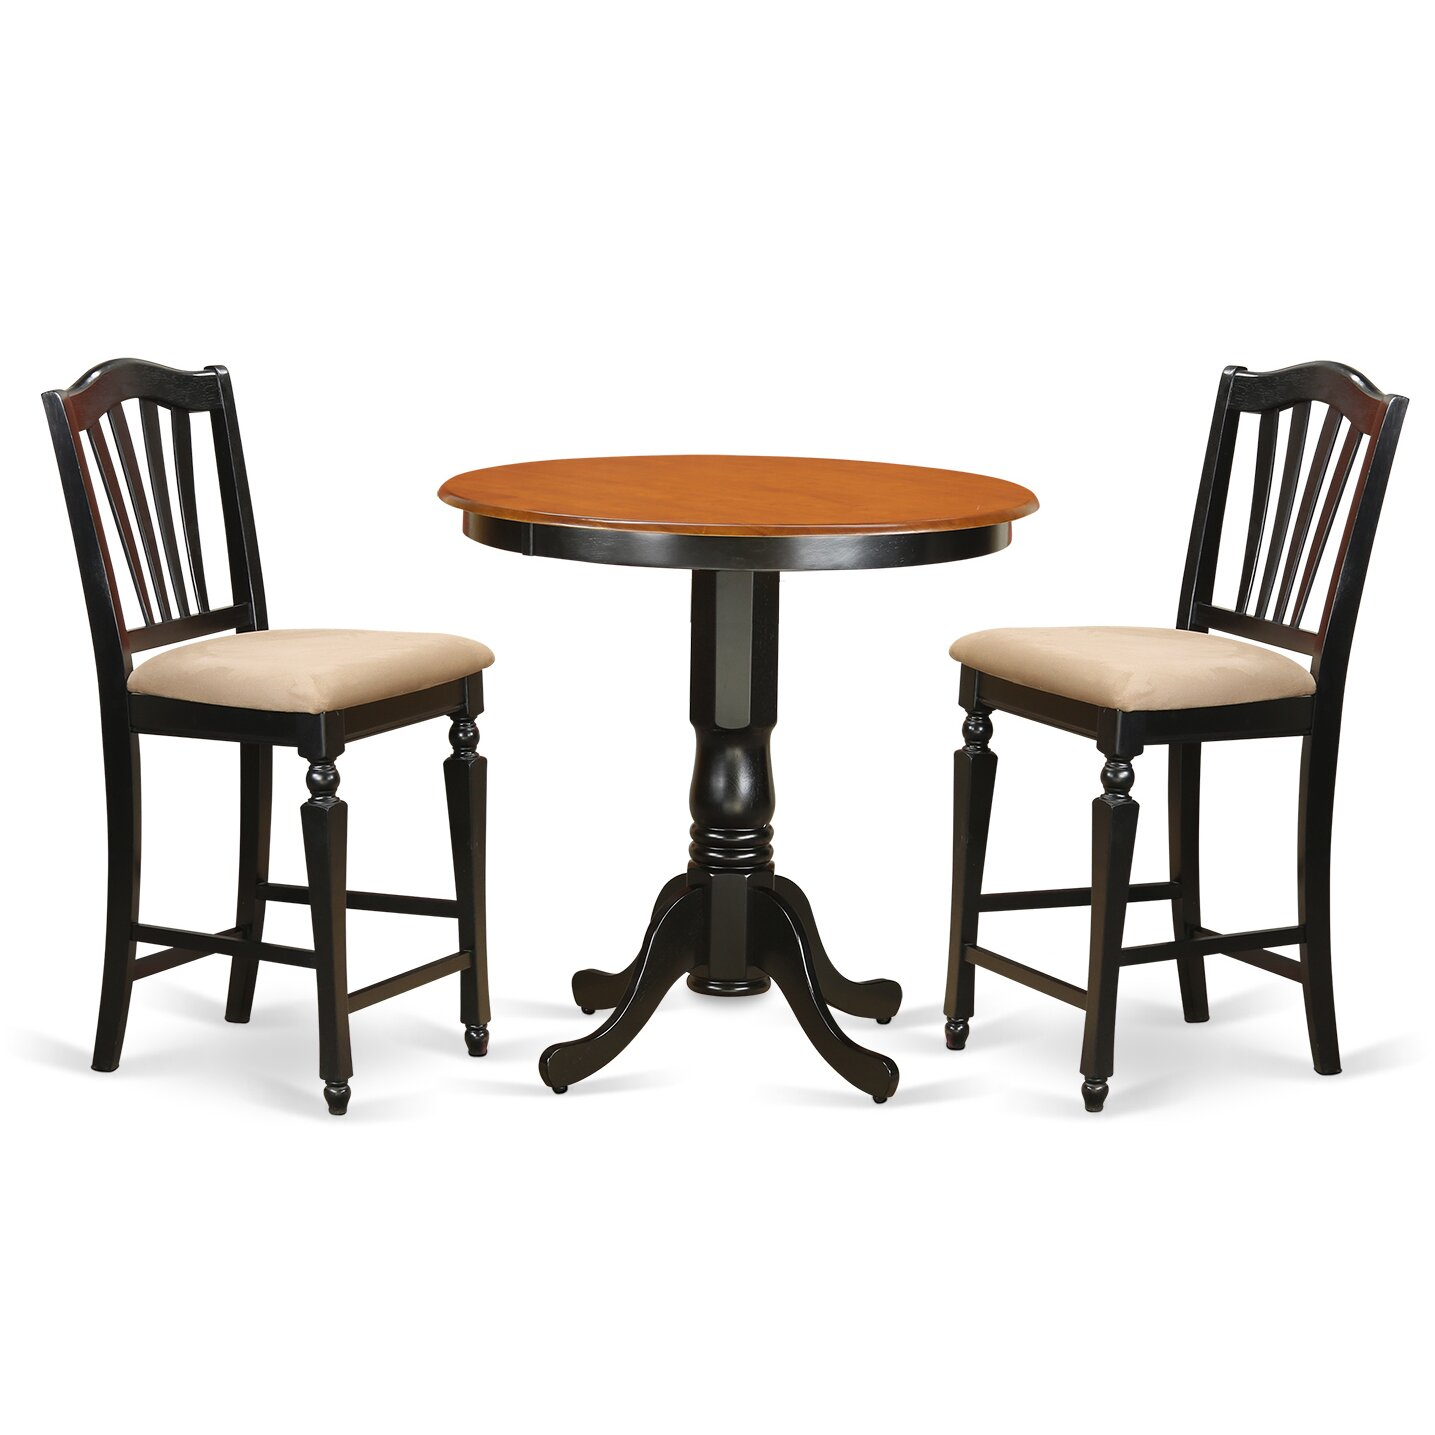 East west jackson 3 piece counter height pub table set for High chair dining set